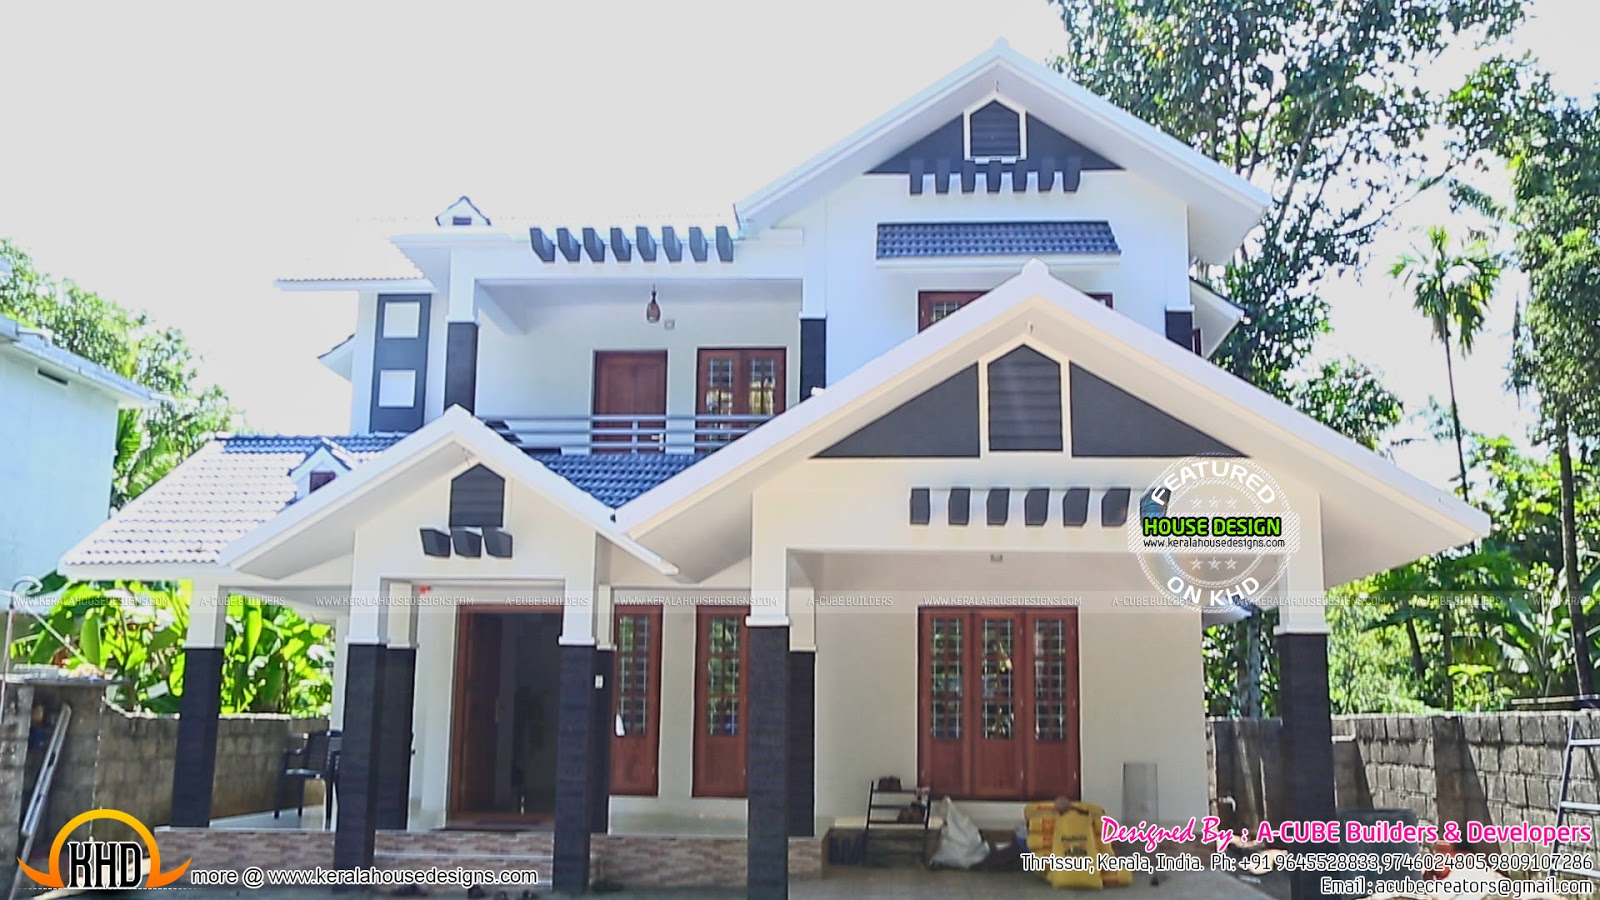 New house plans for 2016 starts here kerala home design New home plans